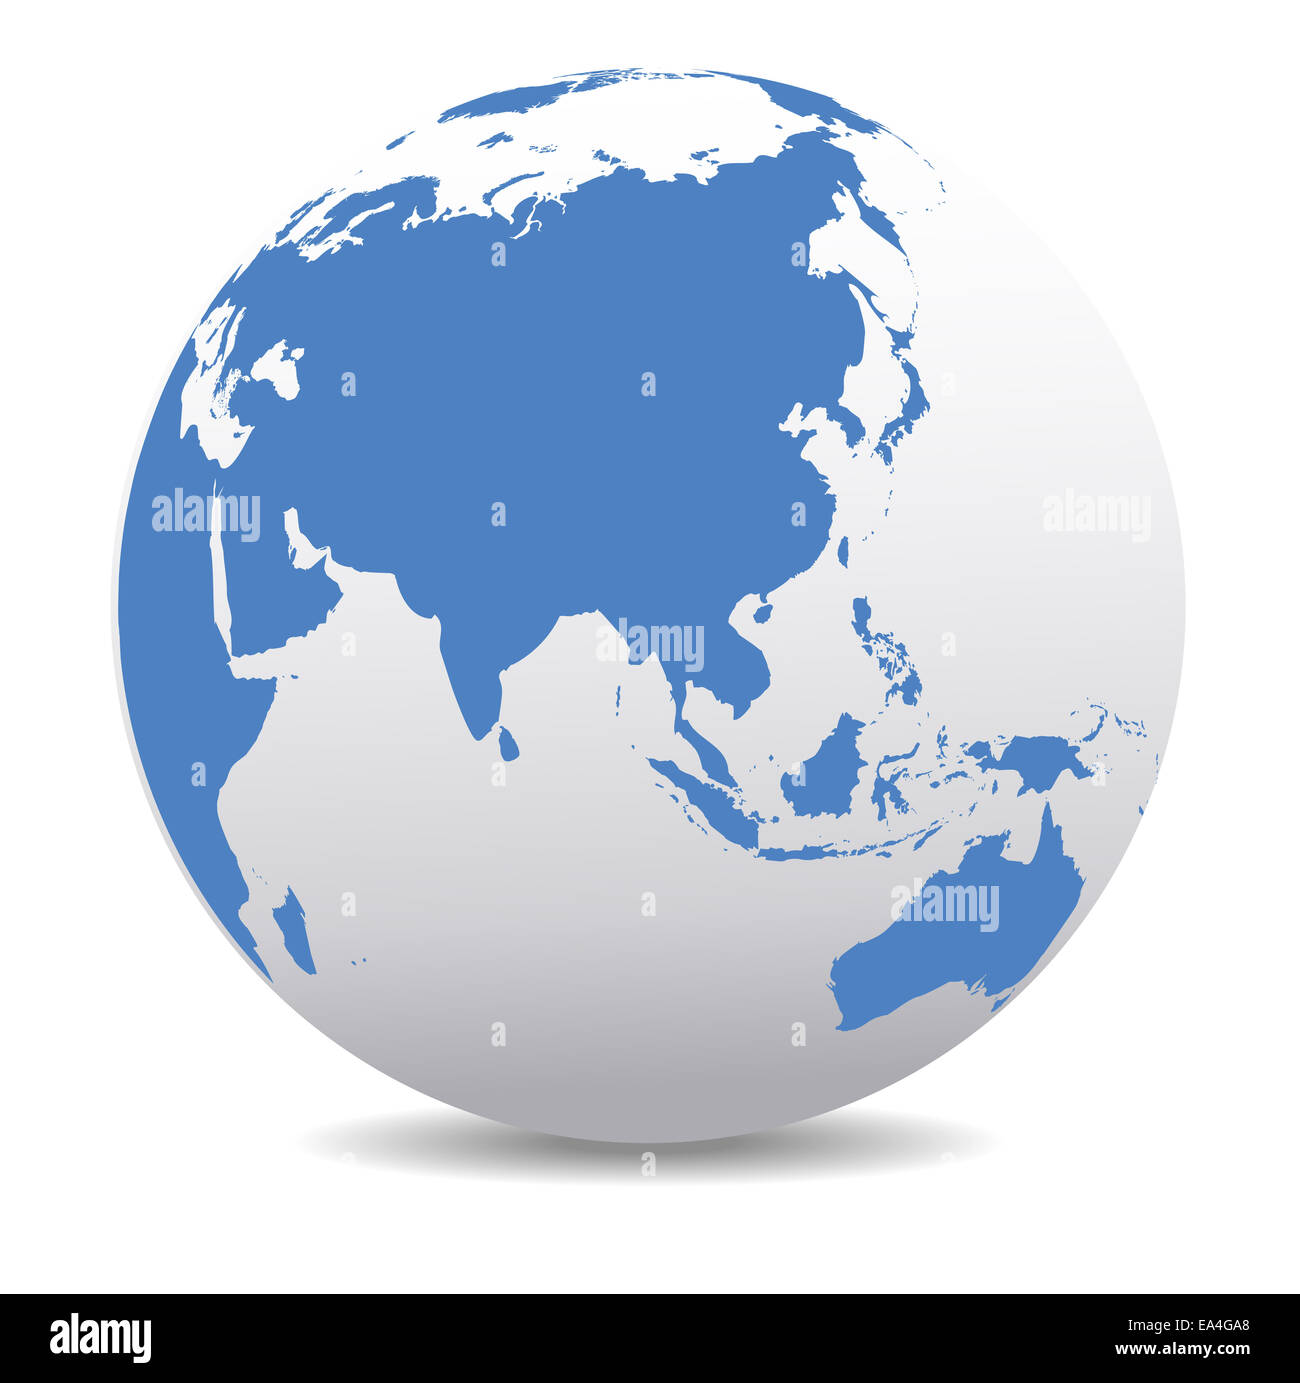 Asia china japan world earth icon globe map stock photo 75088672 asia china japan world earth icon globe map gumiabroncs Gallery